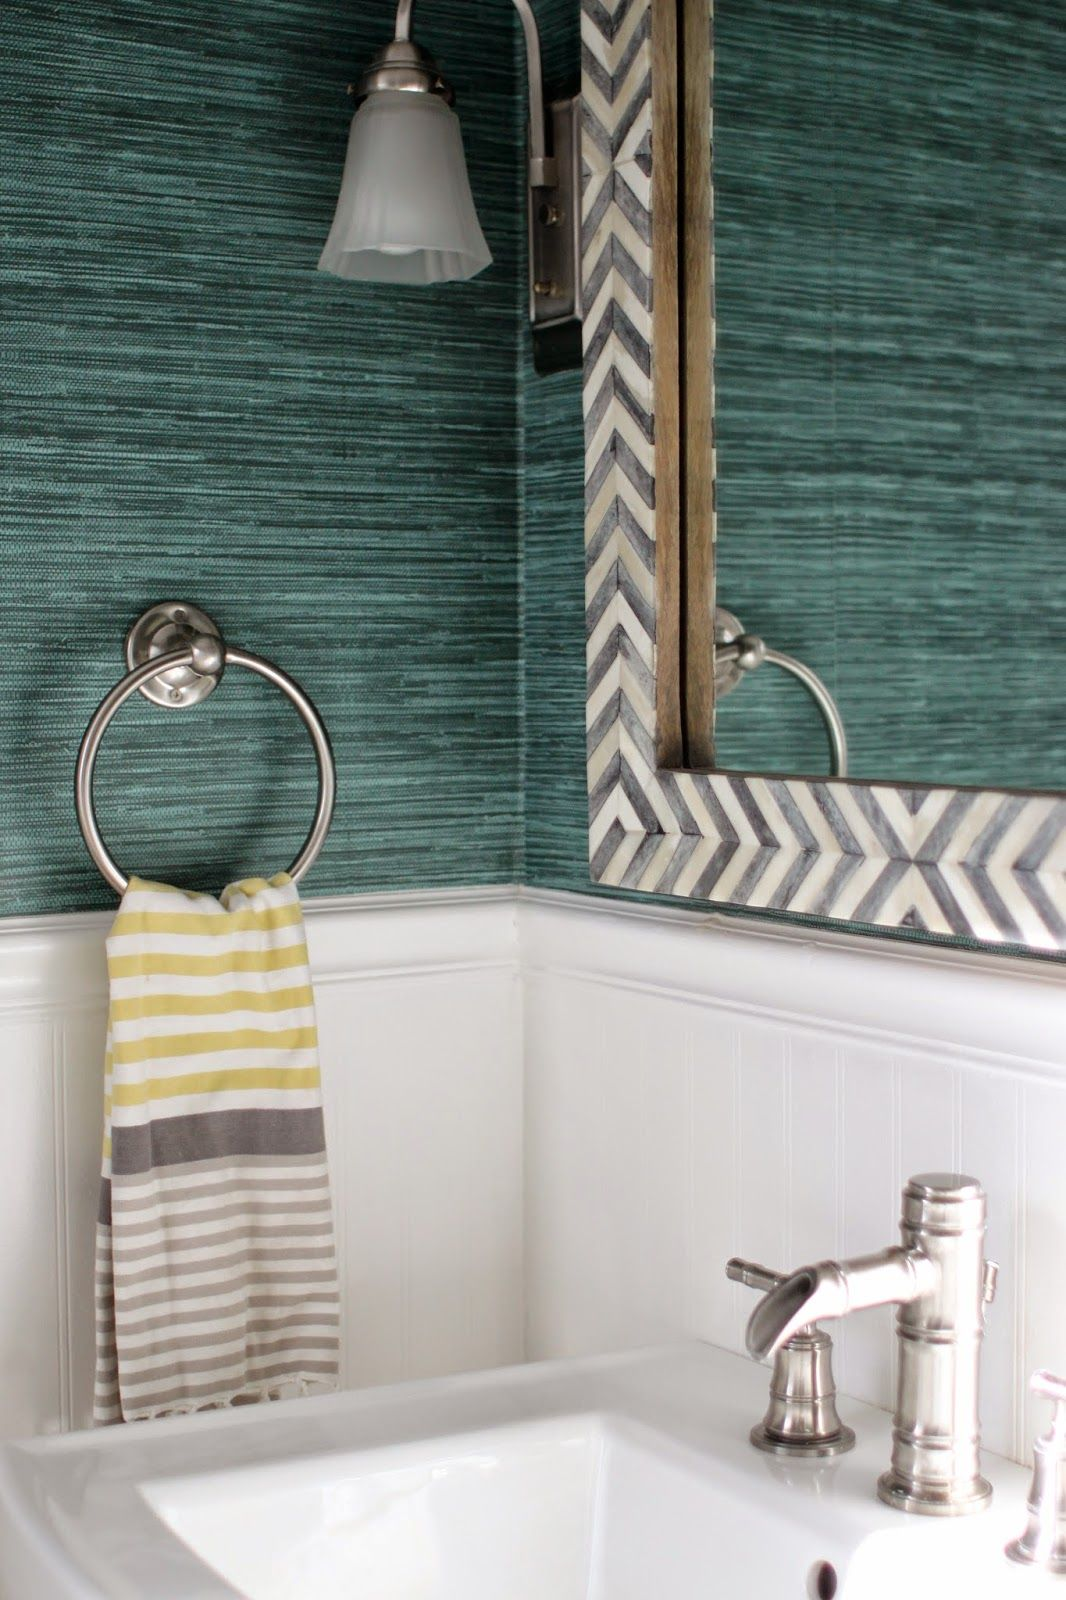 Bathroom makeover with Spoonflower wallpaper. Grass cloth